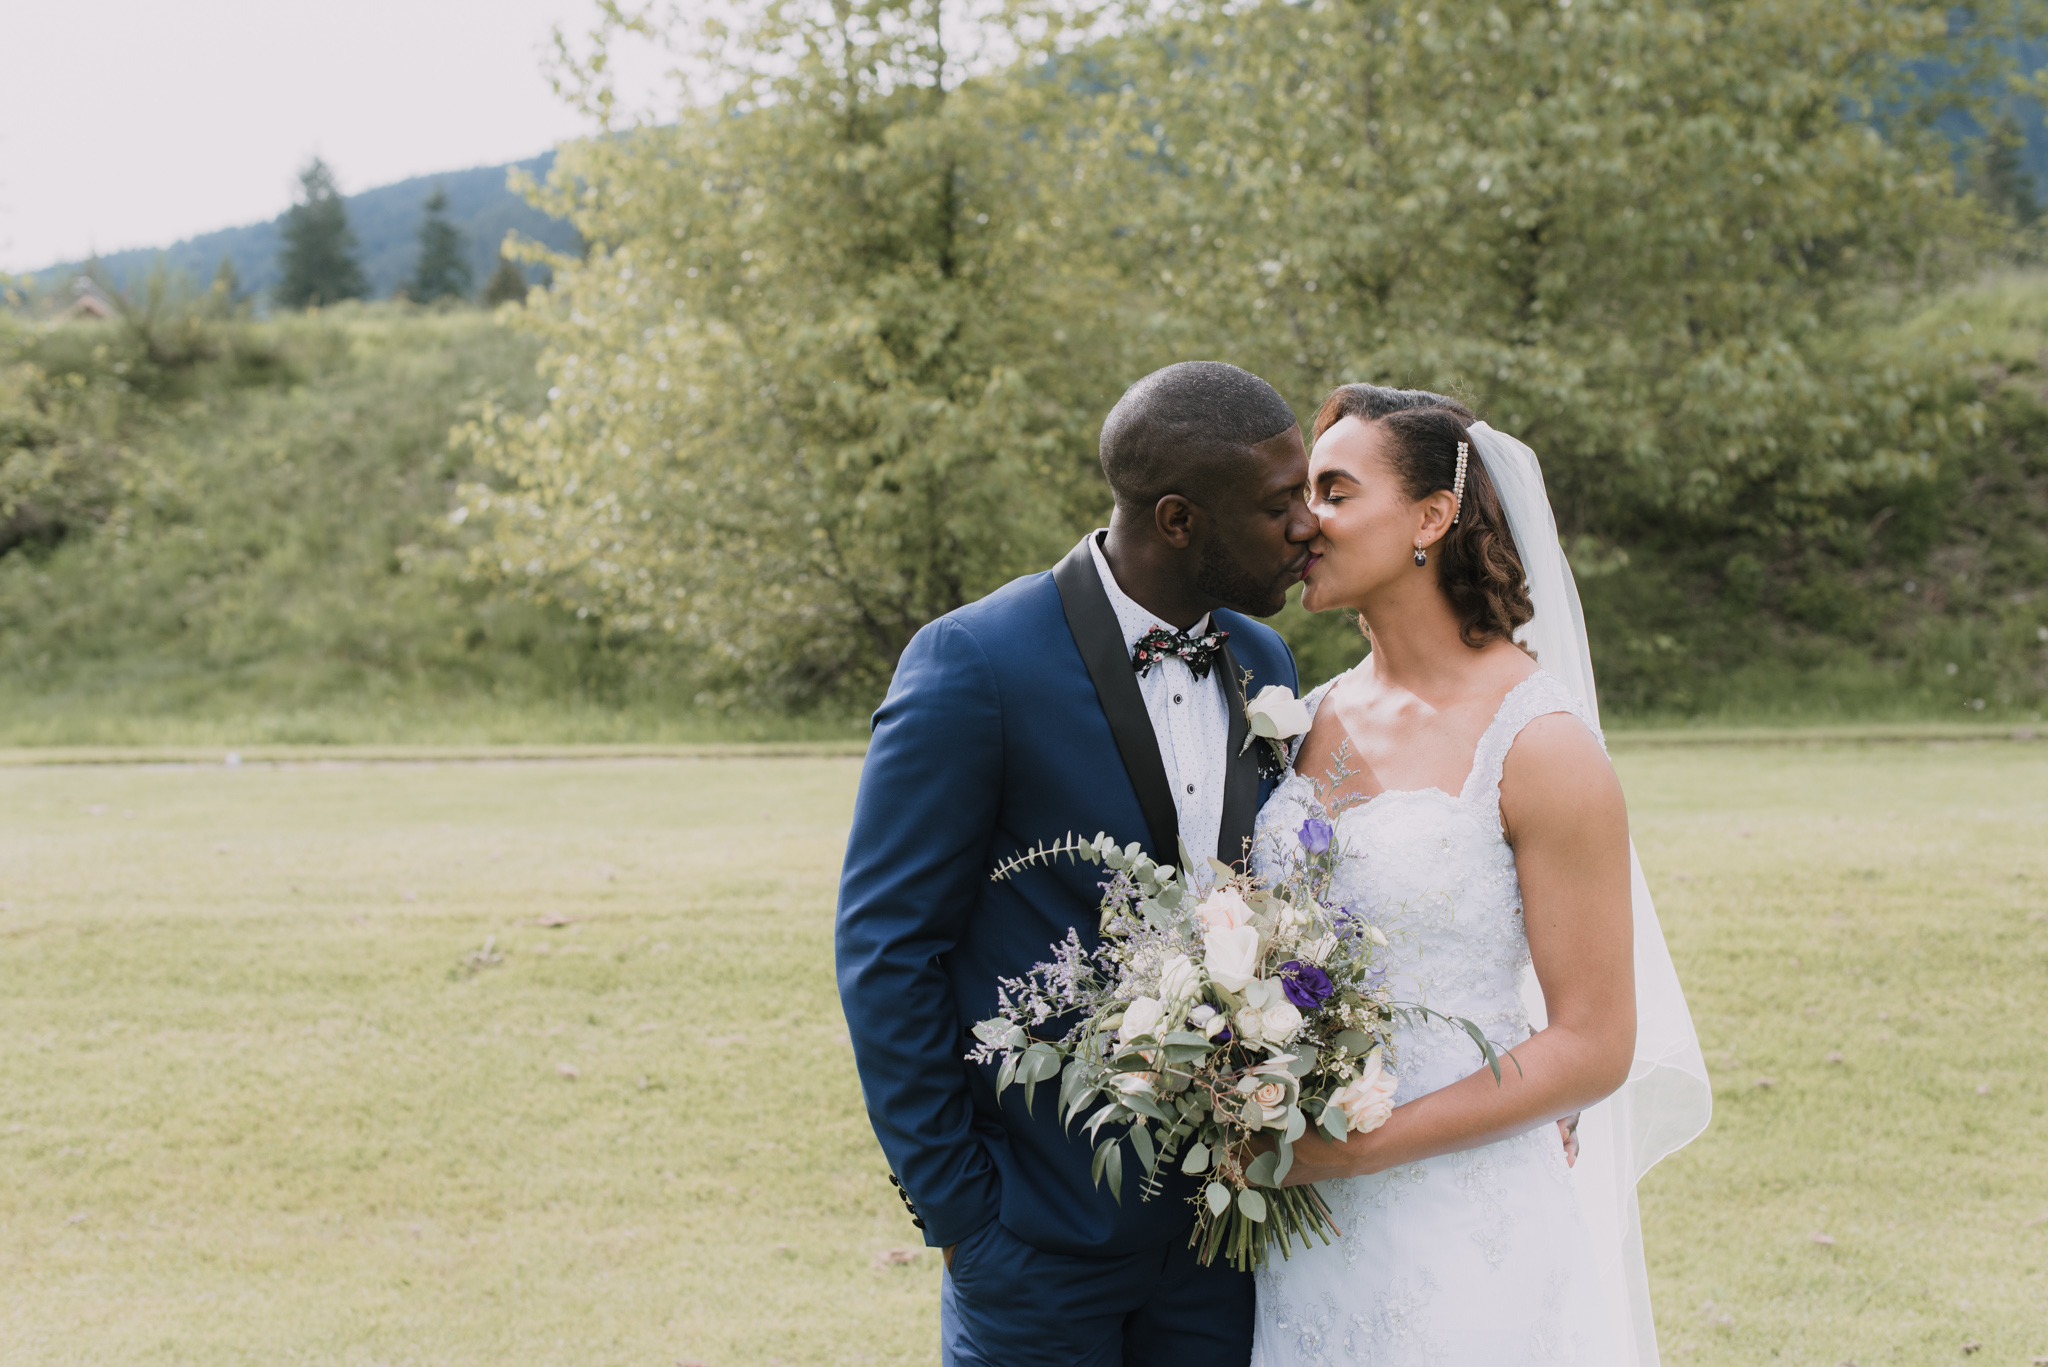 Gabe and Dwight_Westwood Plateau_Katie Powell Photography-41.jpg